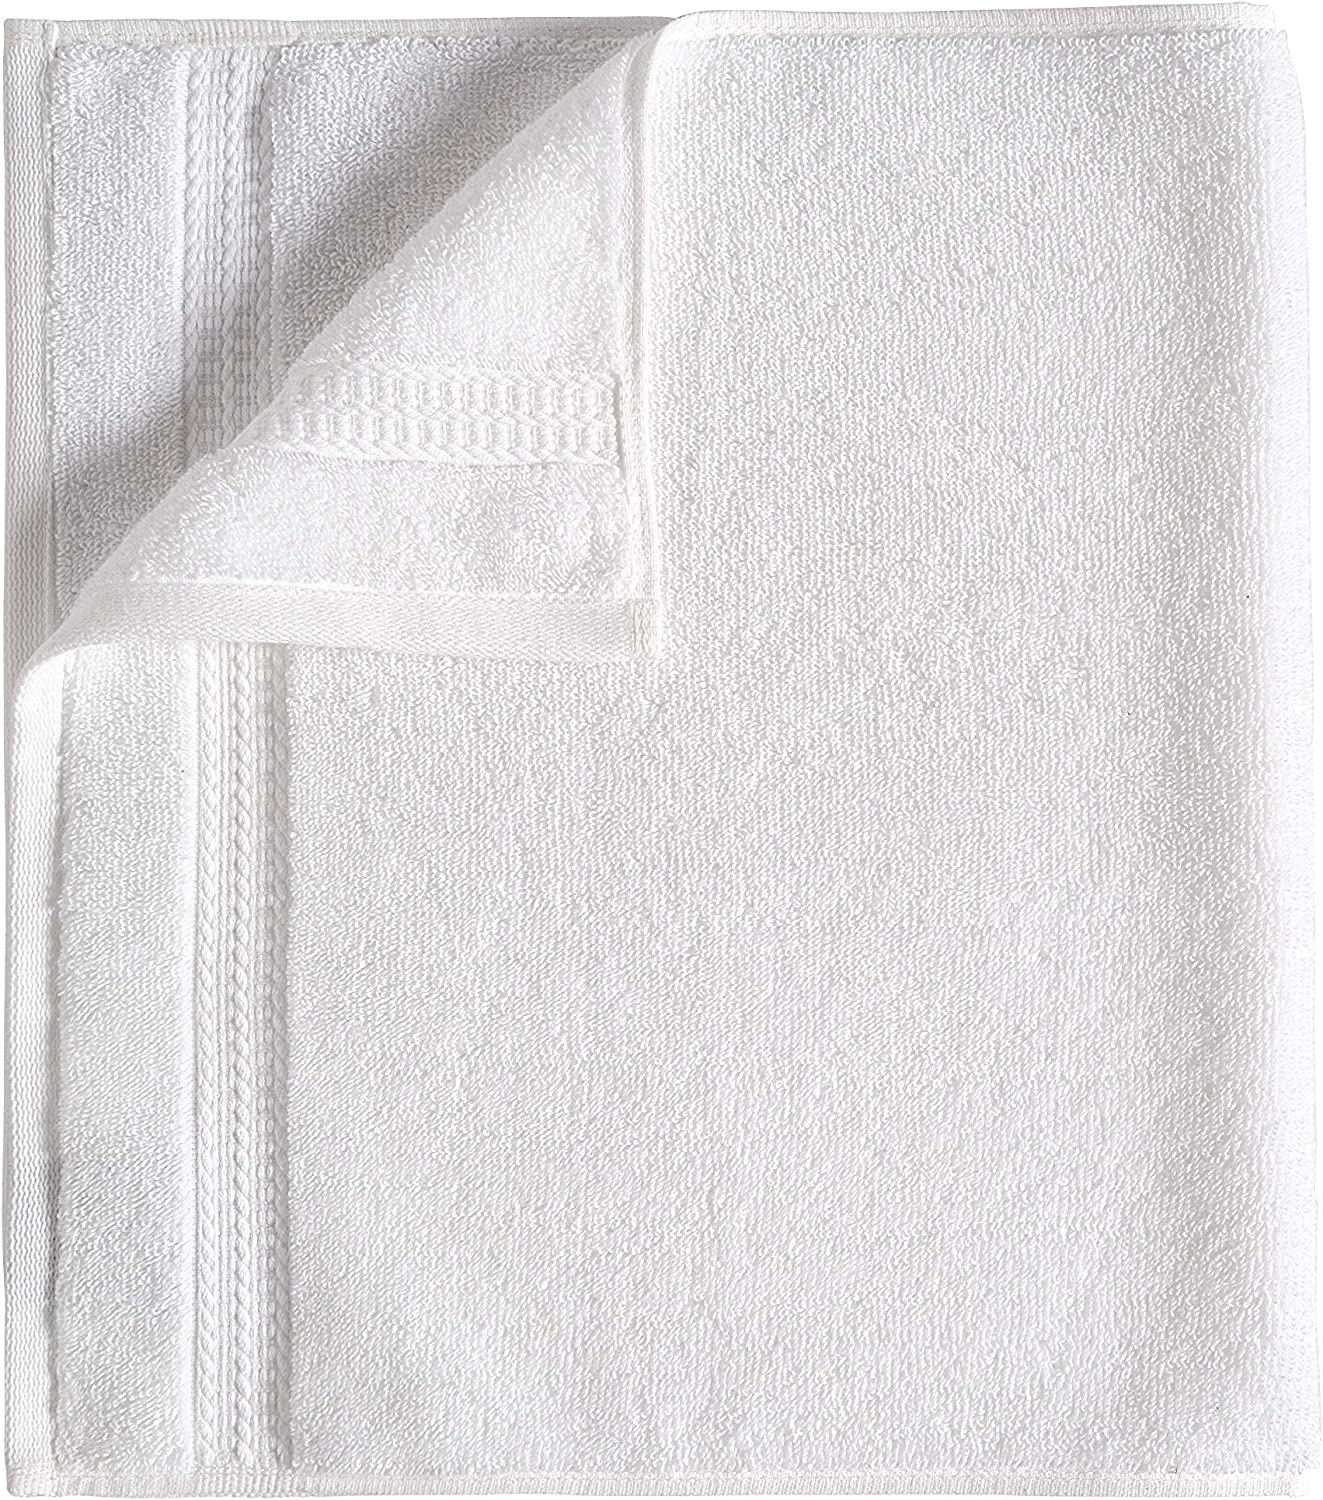 White Pack of 24 13 x 13 inches 580 GSM Haven Cotton 100/% Premium Cotton Washcloth Towel Set